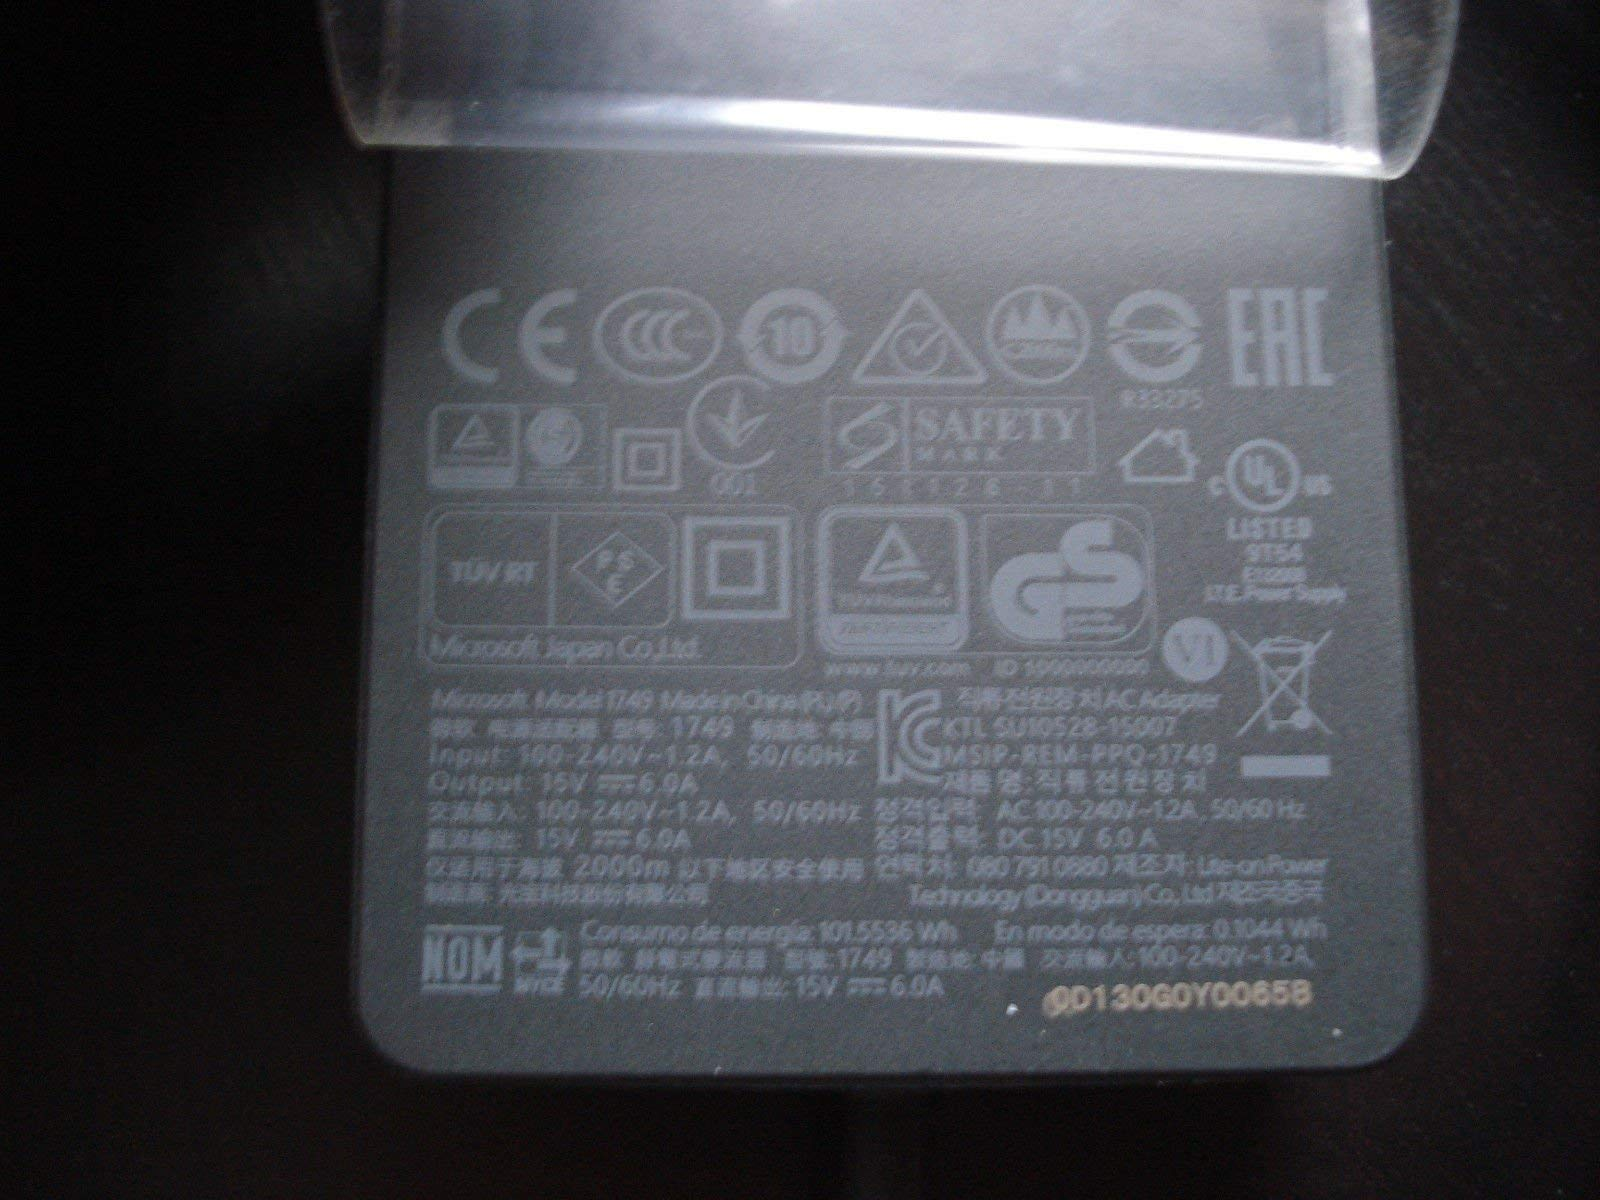 Microsoft Surface Dock Power Supply AC Adapter 90W 15V (Non-Retail Packaging) (Renewed)